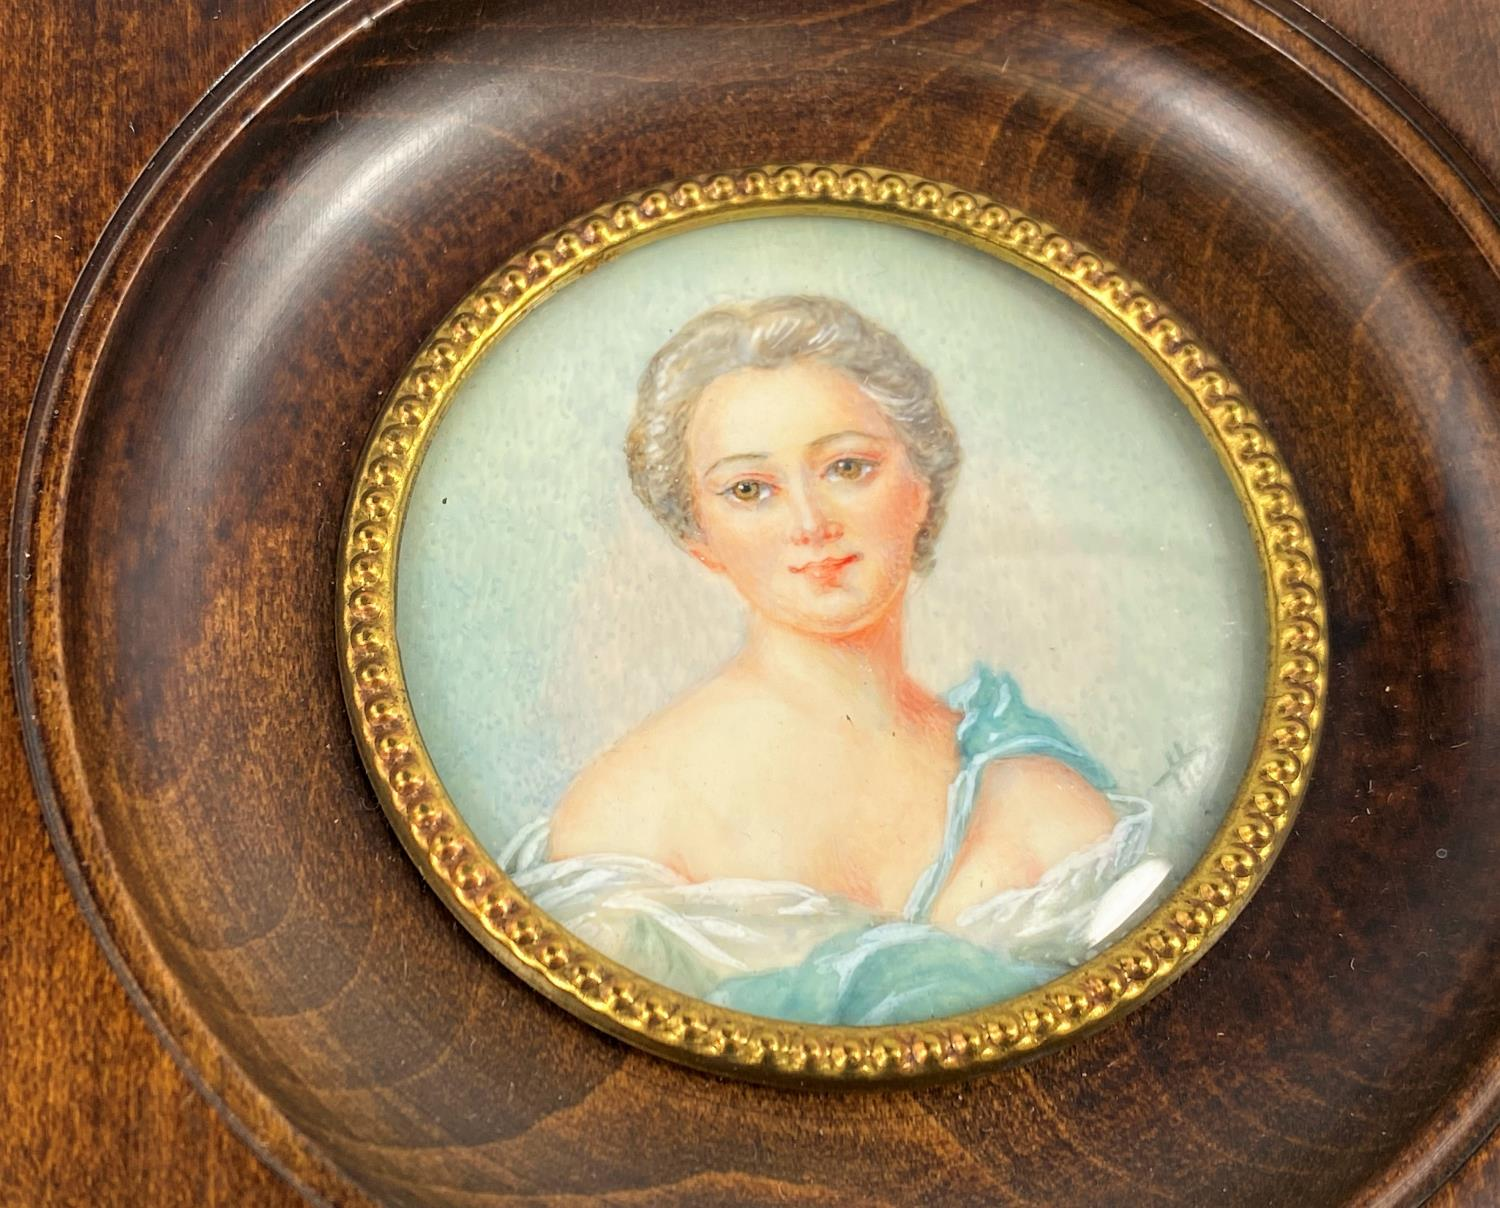 Two hand painted portrait miniatures: Mdme de Pompadour and Madame Adelaide, signed, diameter 55 mm, - Image 3 of 4